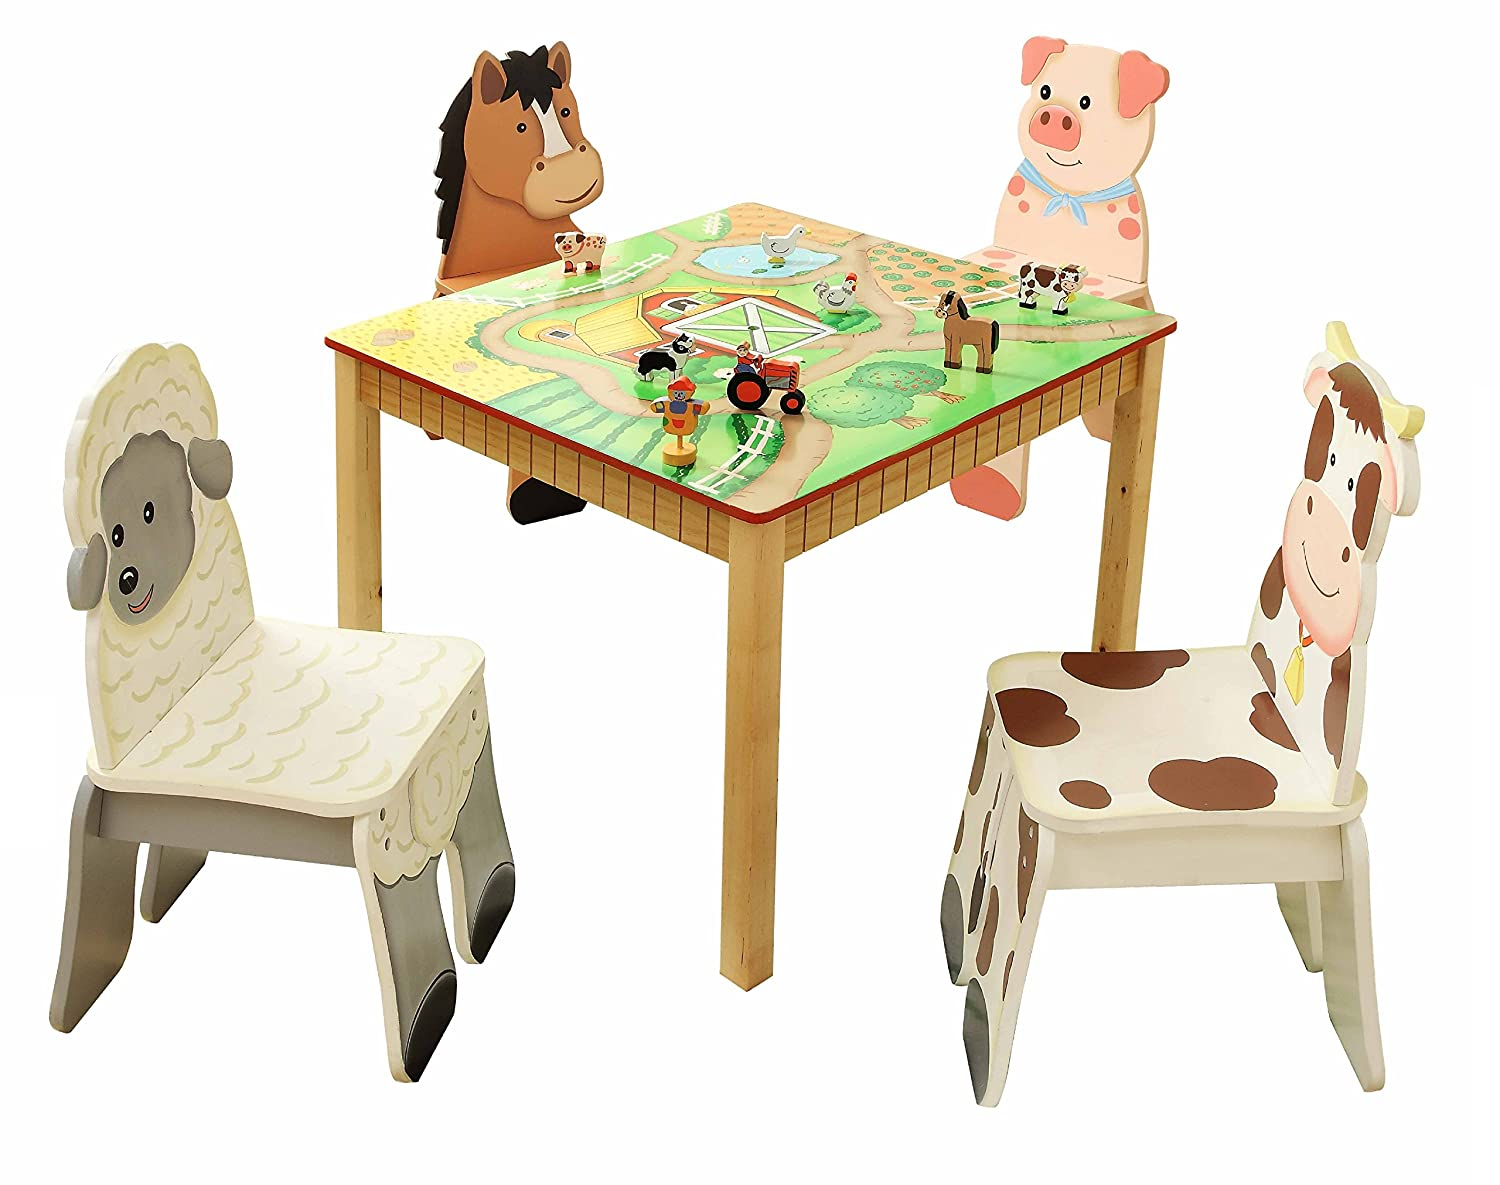 Fantasy Fields | Hand Crafted /& Hand Painted Details Table Sold Seperately Happy Farm Animals themed Kids Wooden Cow Chair Child Friendly Water-based Paint